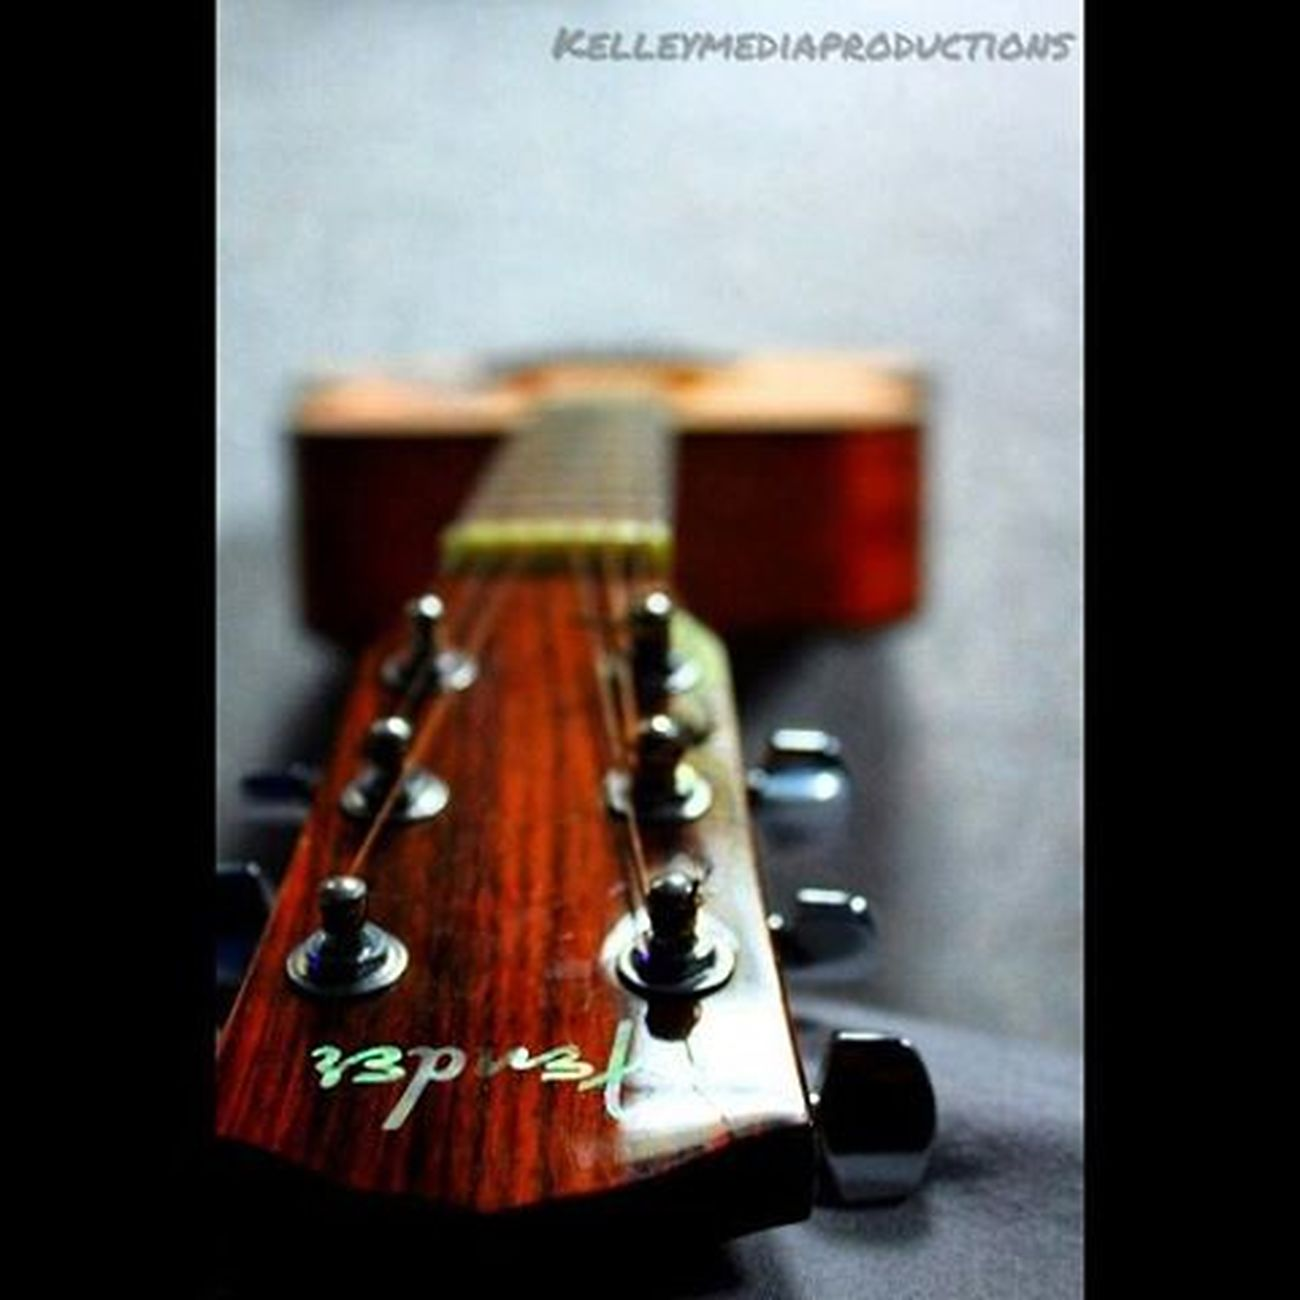 Music makes the world go round. Kelleymediaproductions Guitar Fender Fenderguitar Fenderacoustic Acousticguitar Art Photography Color Colorphotography Photographersofinstagram Canon Canonphotography Canon7d  Stayrad